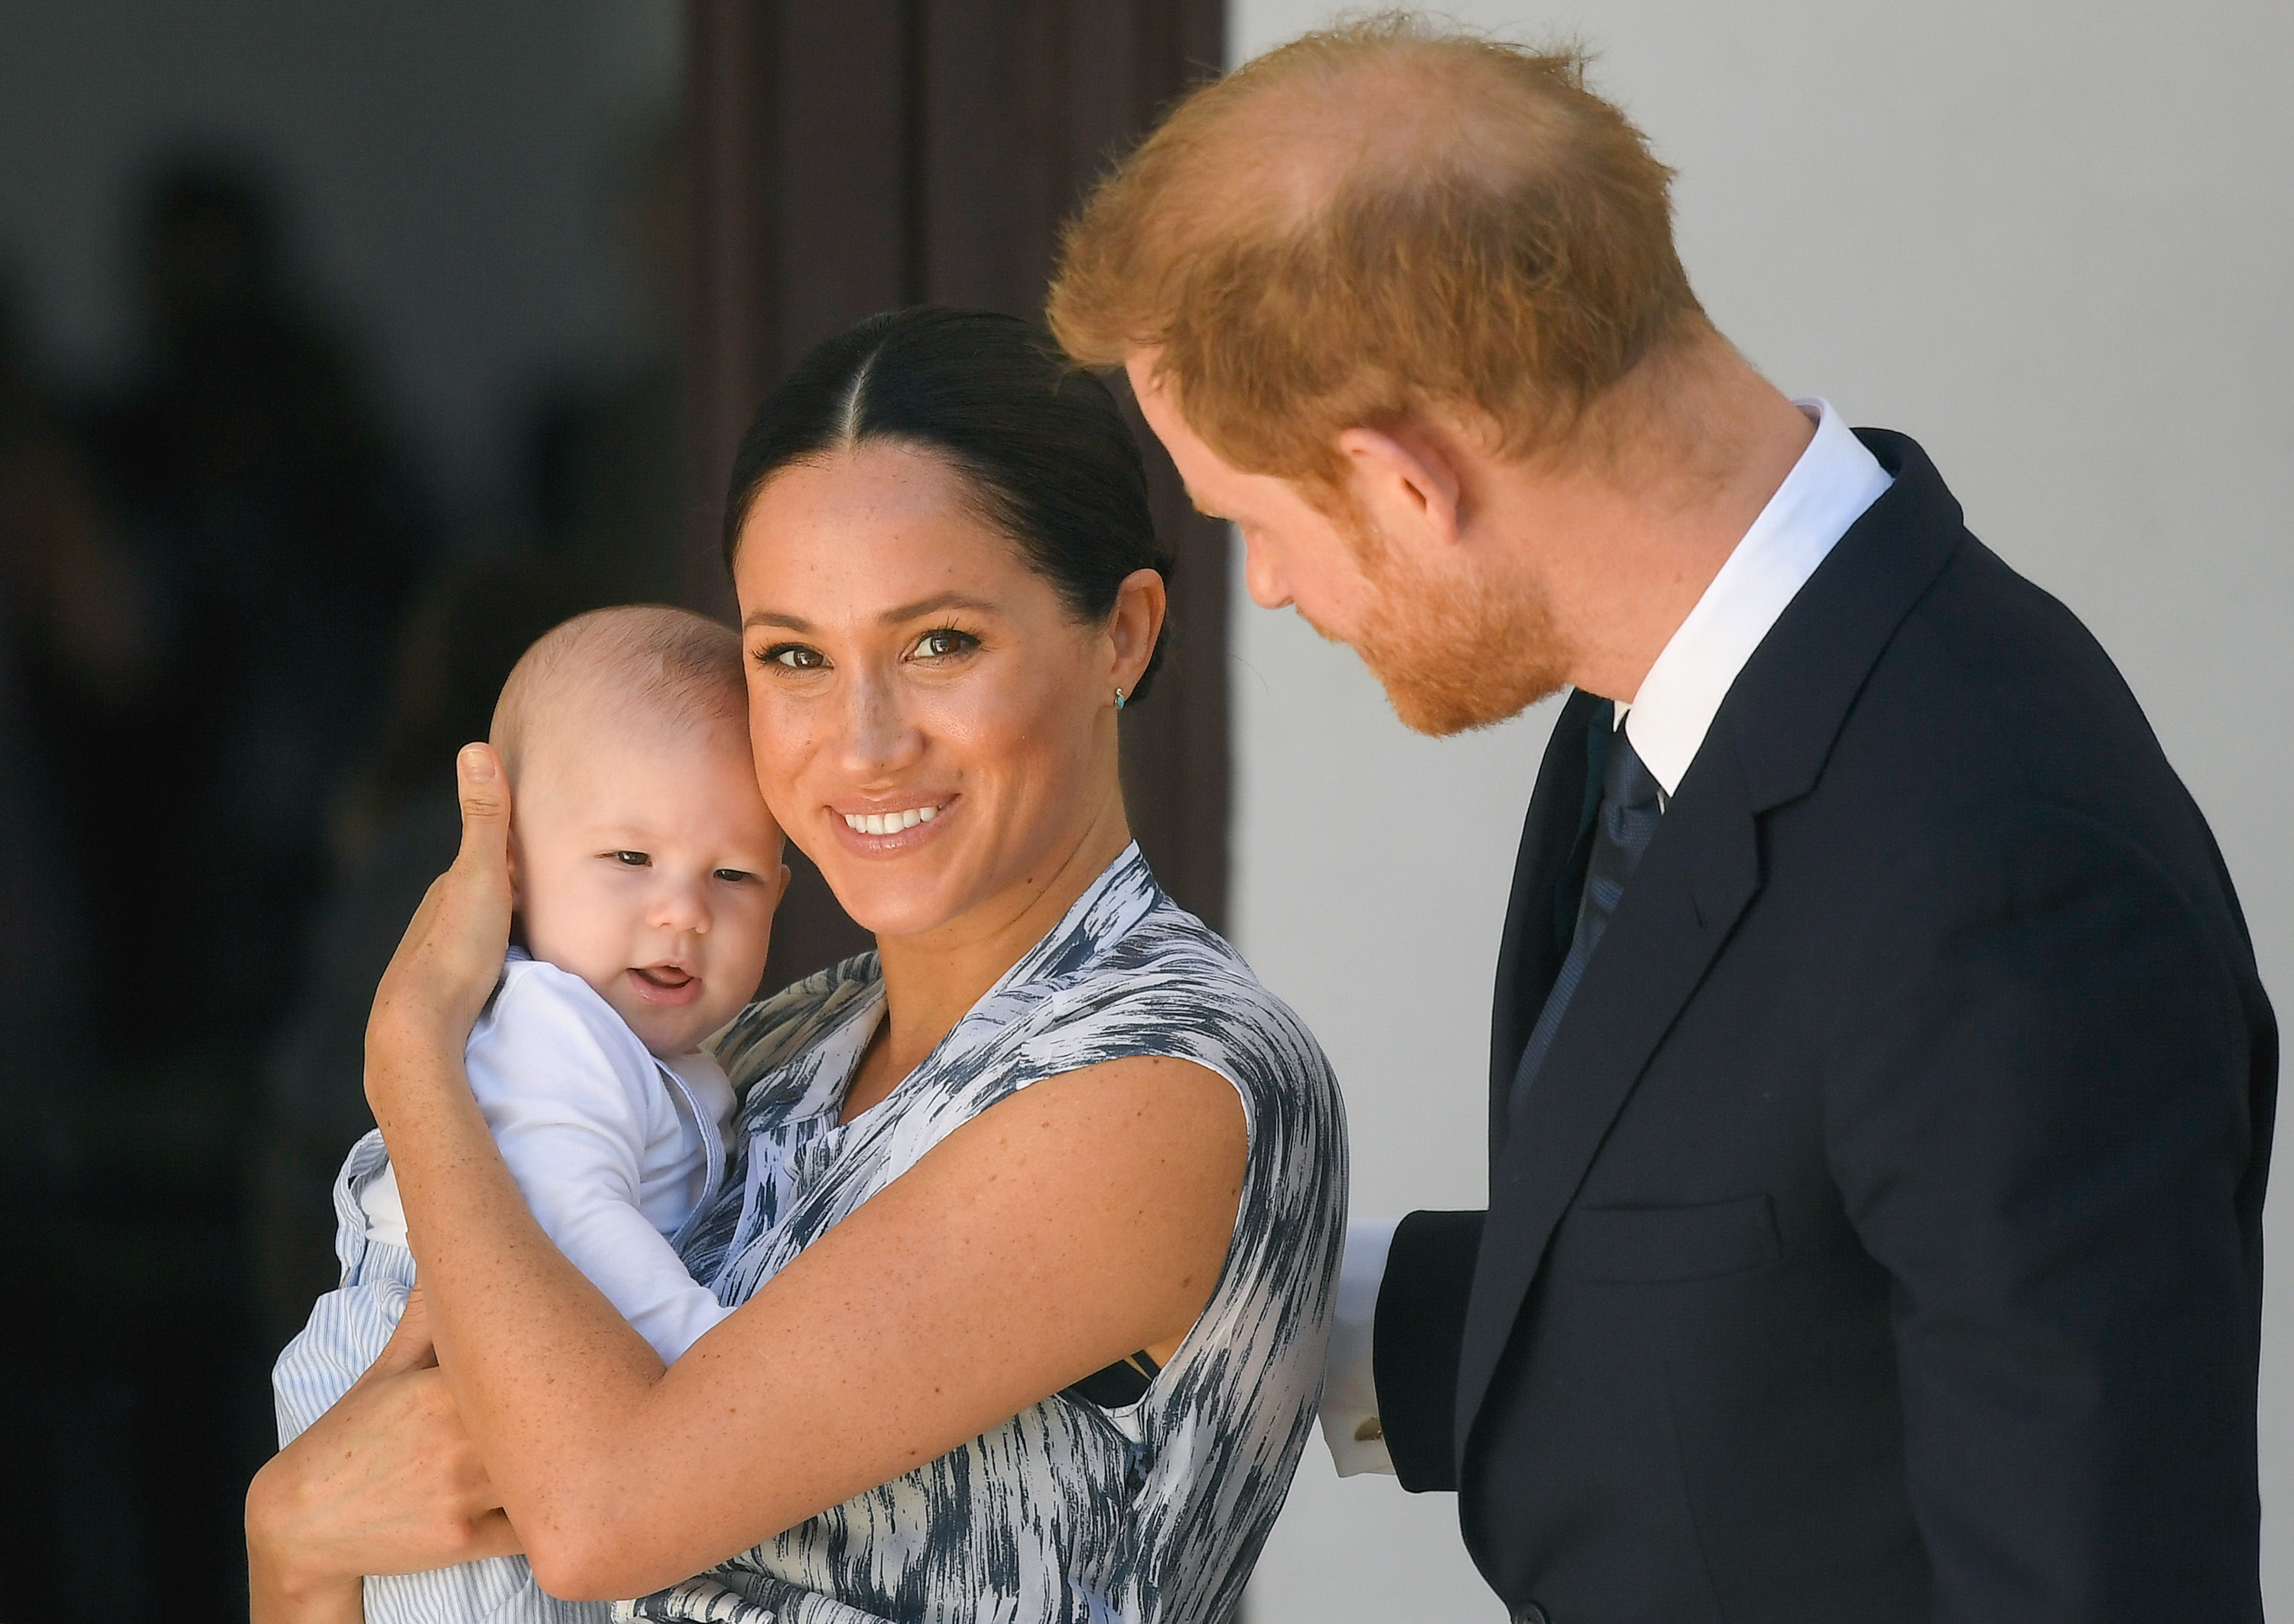 Meghan smiles while holding Archie and Harry puts his arm around her